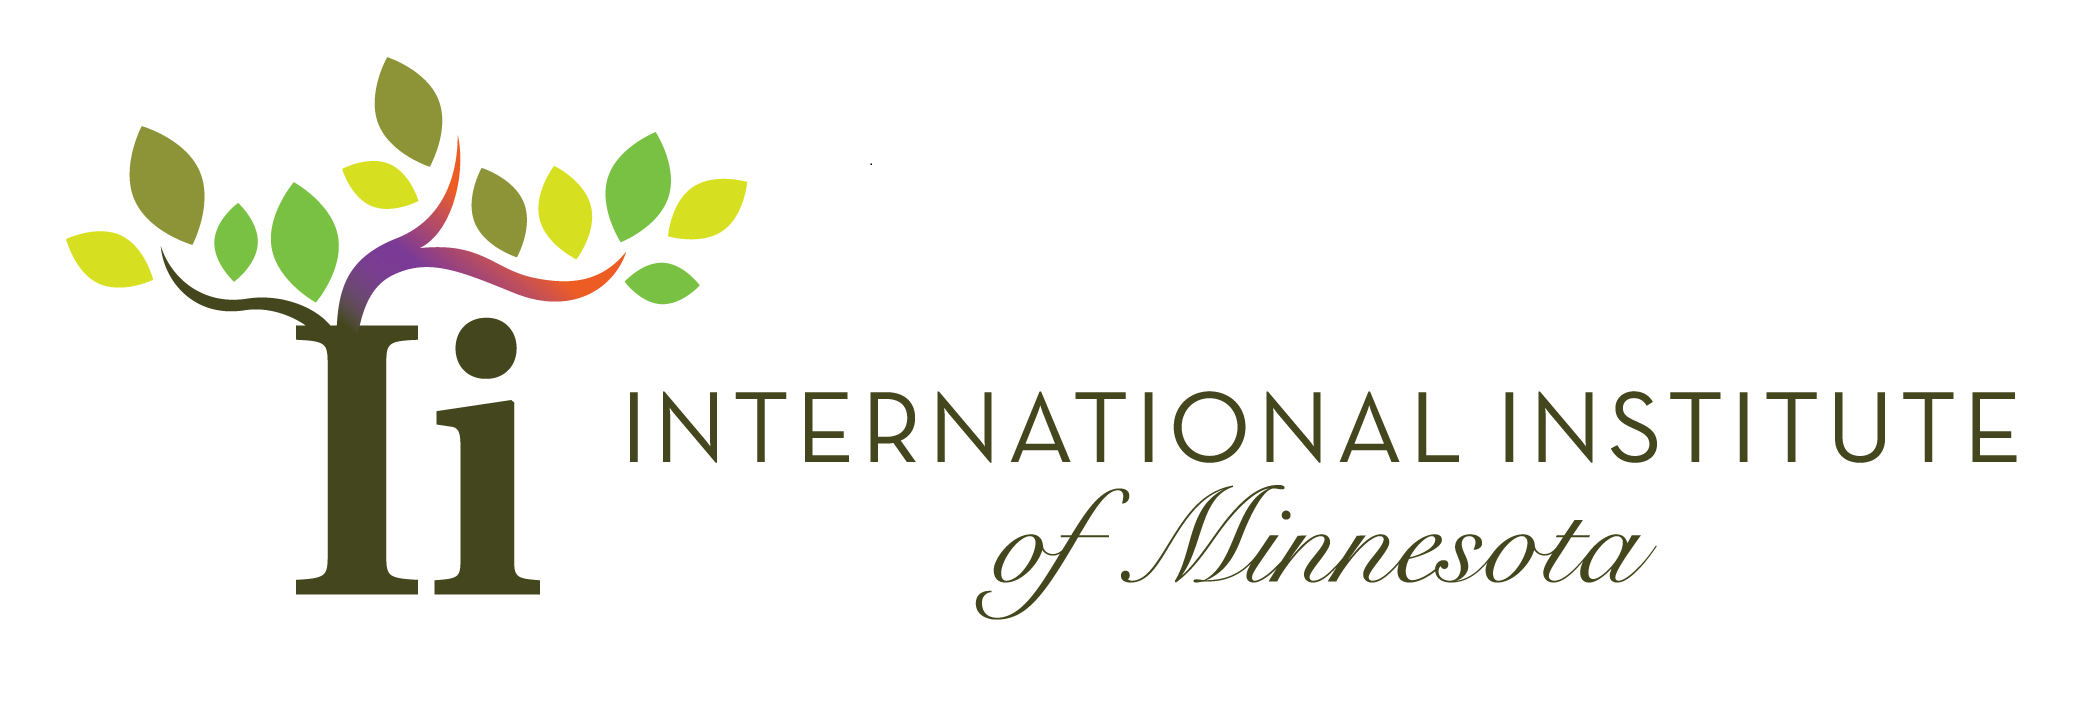 International Institute of Minnesota 2019 International Women's Day